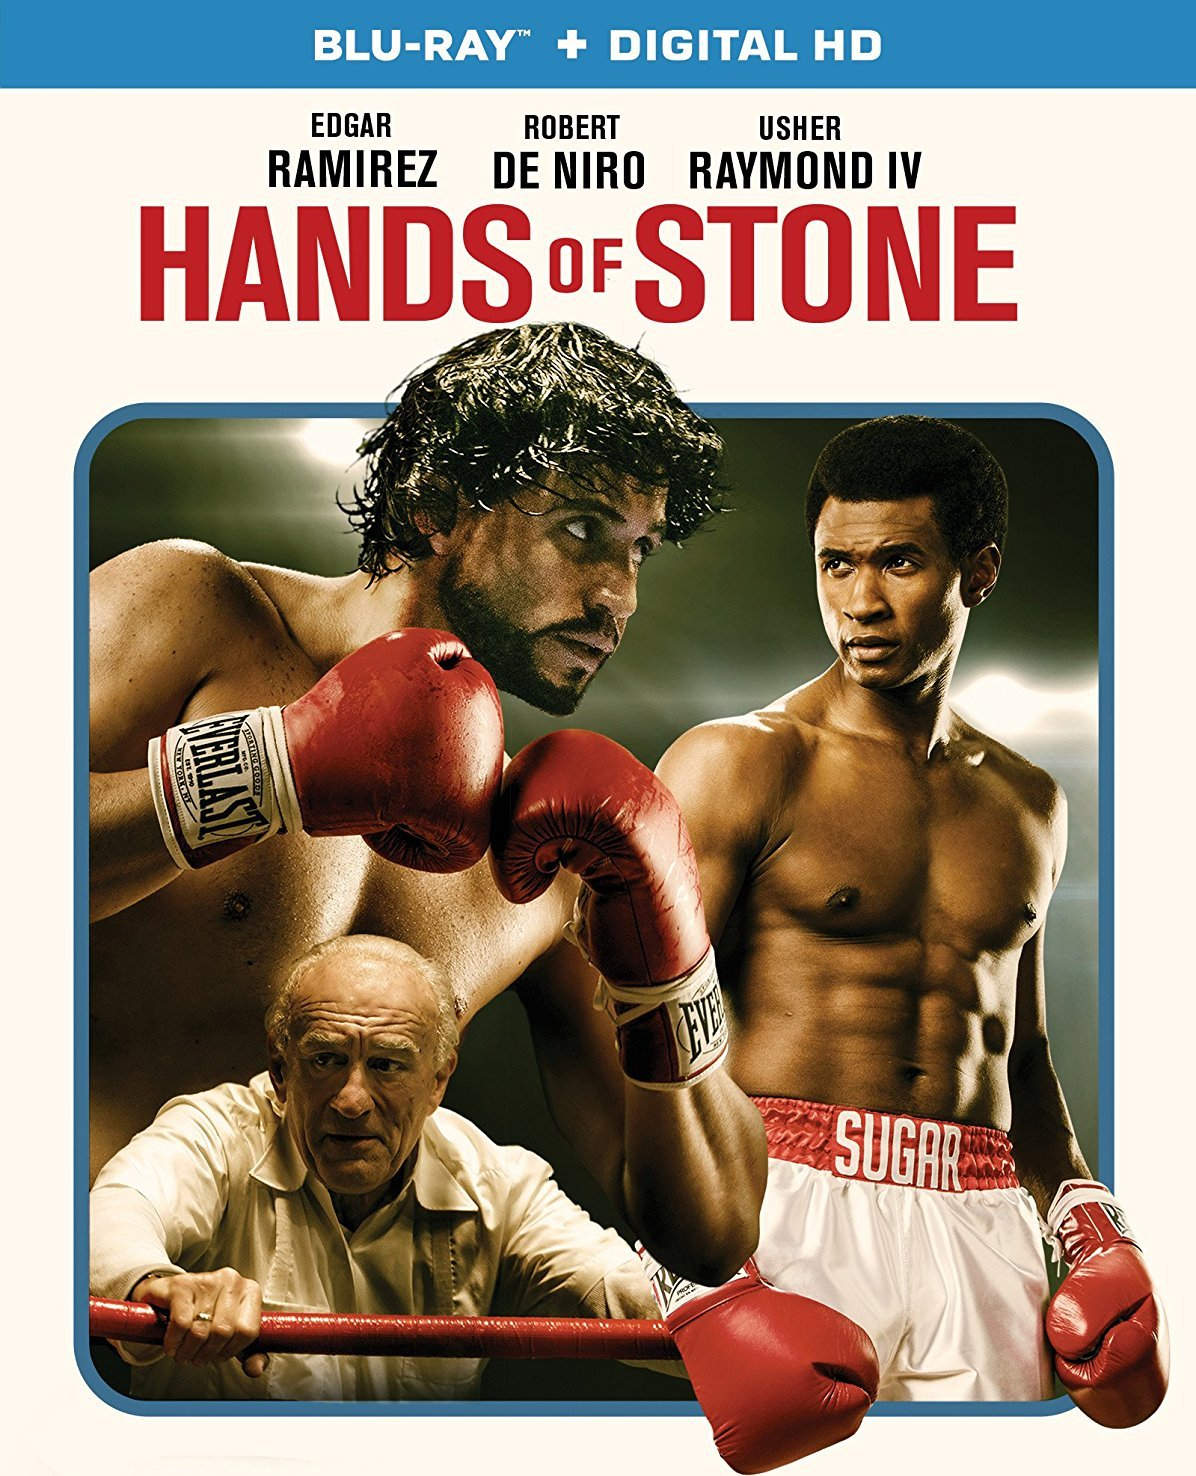 Hands of Stone (2016) poster image